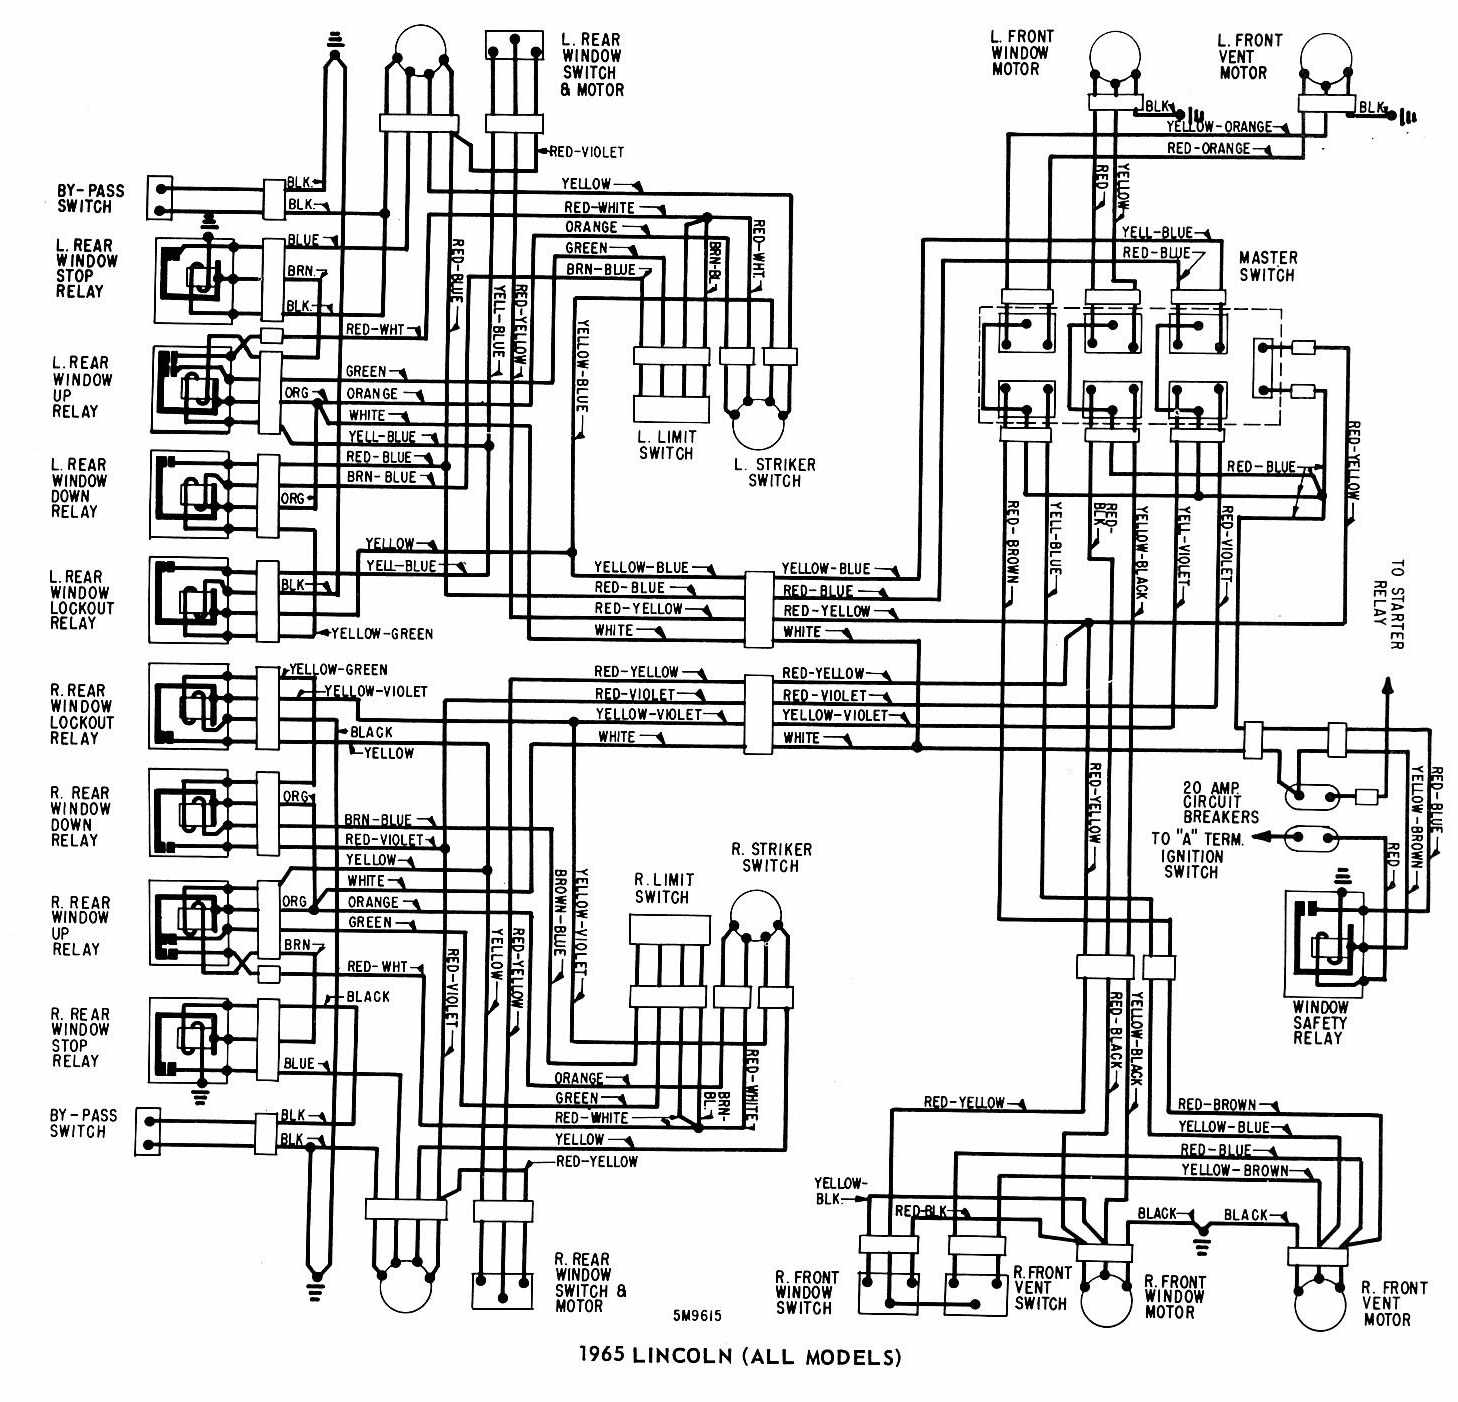 1972 lincoln wiring diagrams 1966 lincoln engine diagram. 1966. free printable wiring ... free lincoln wiring diagrams #11